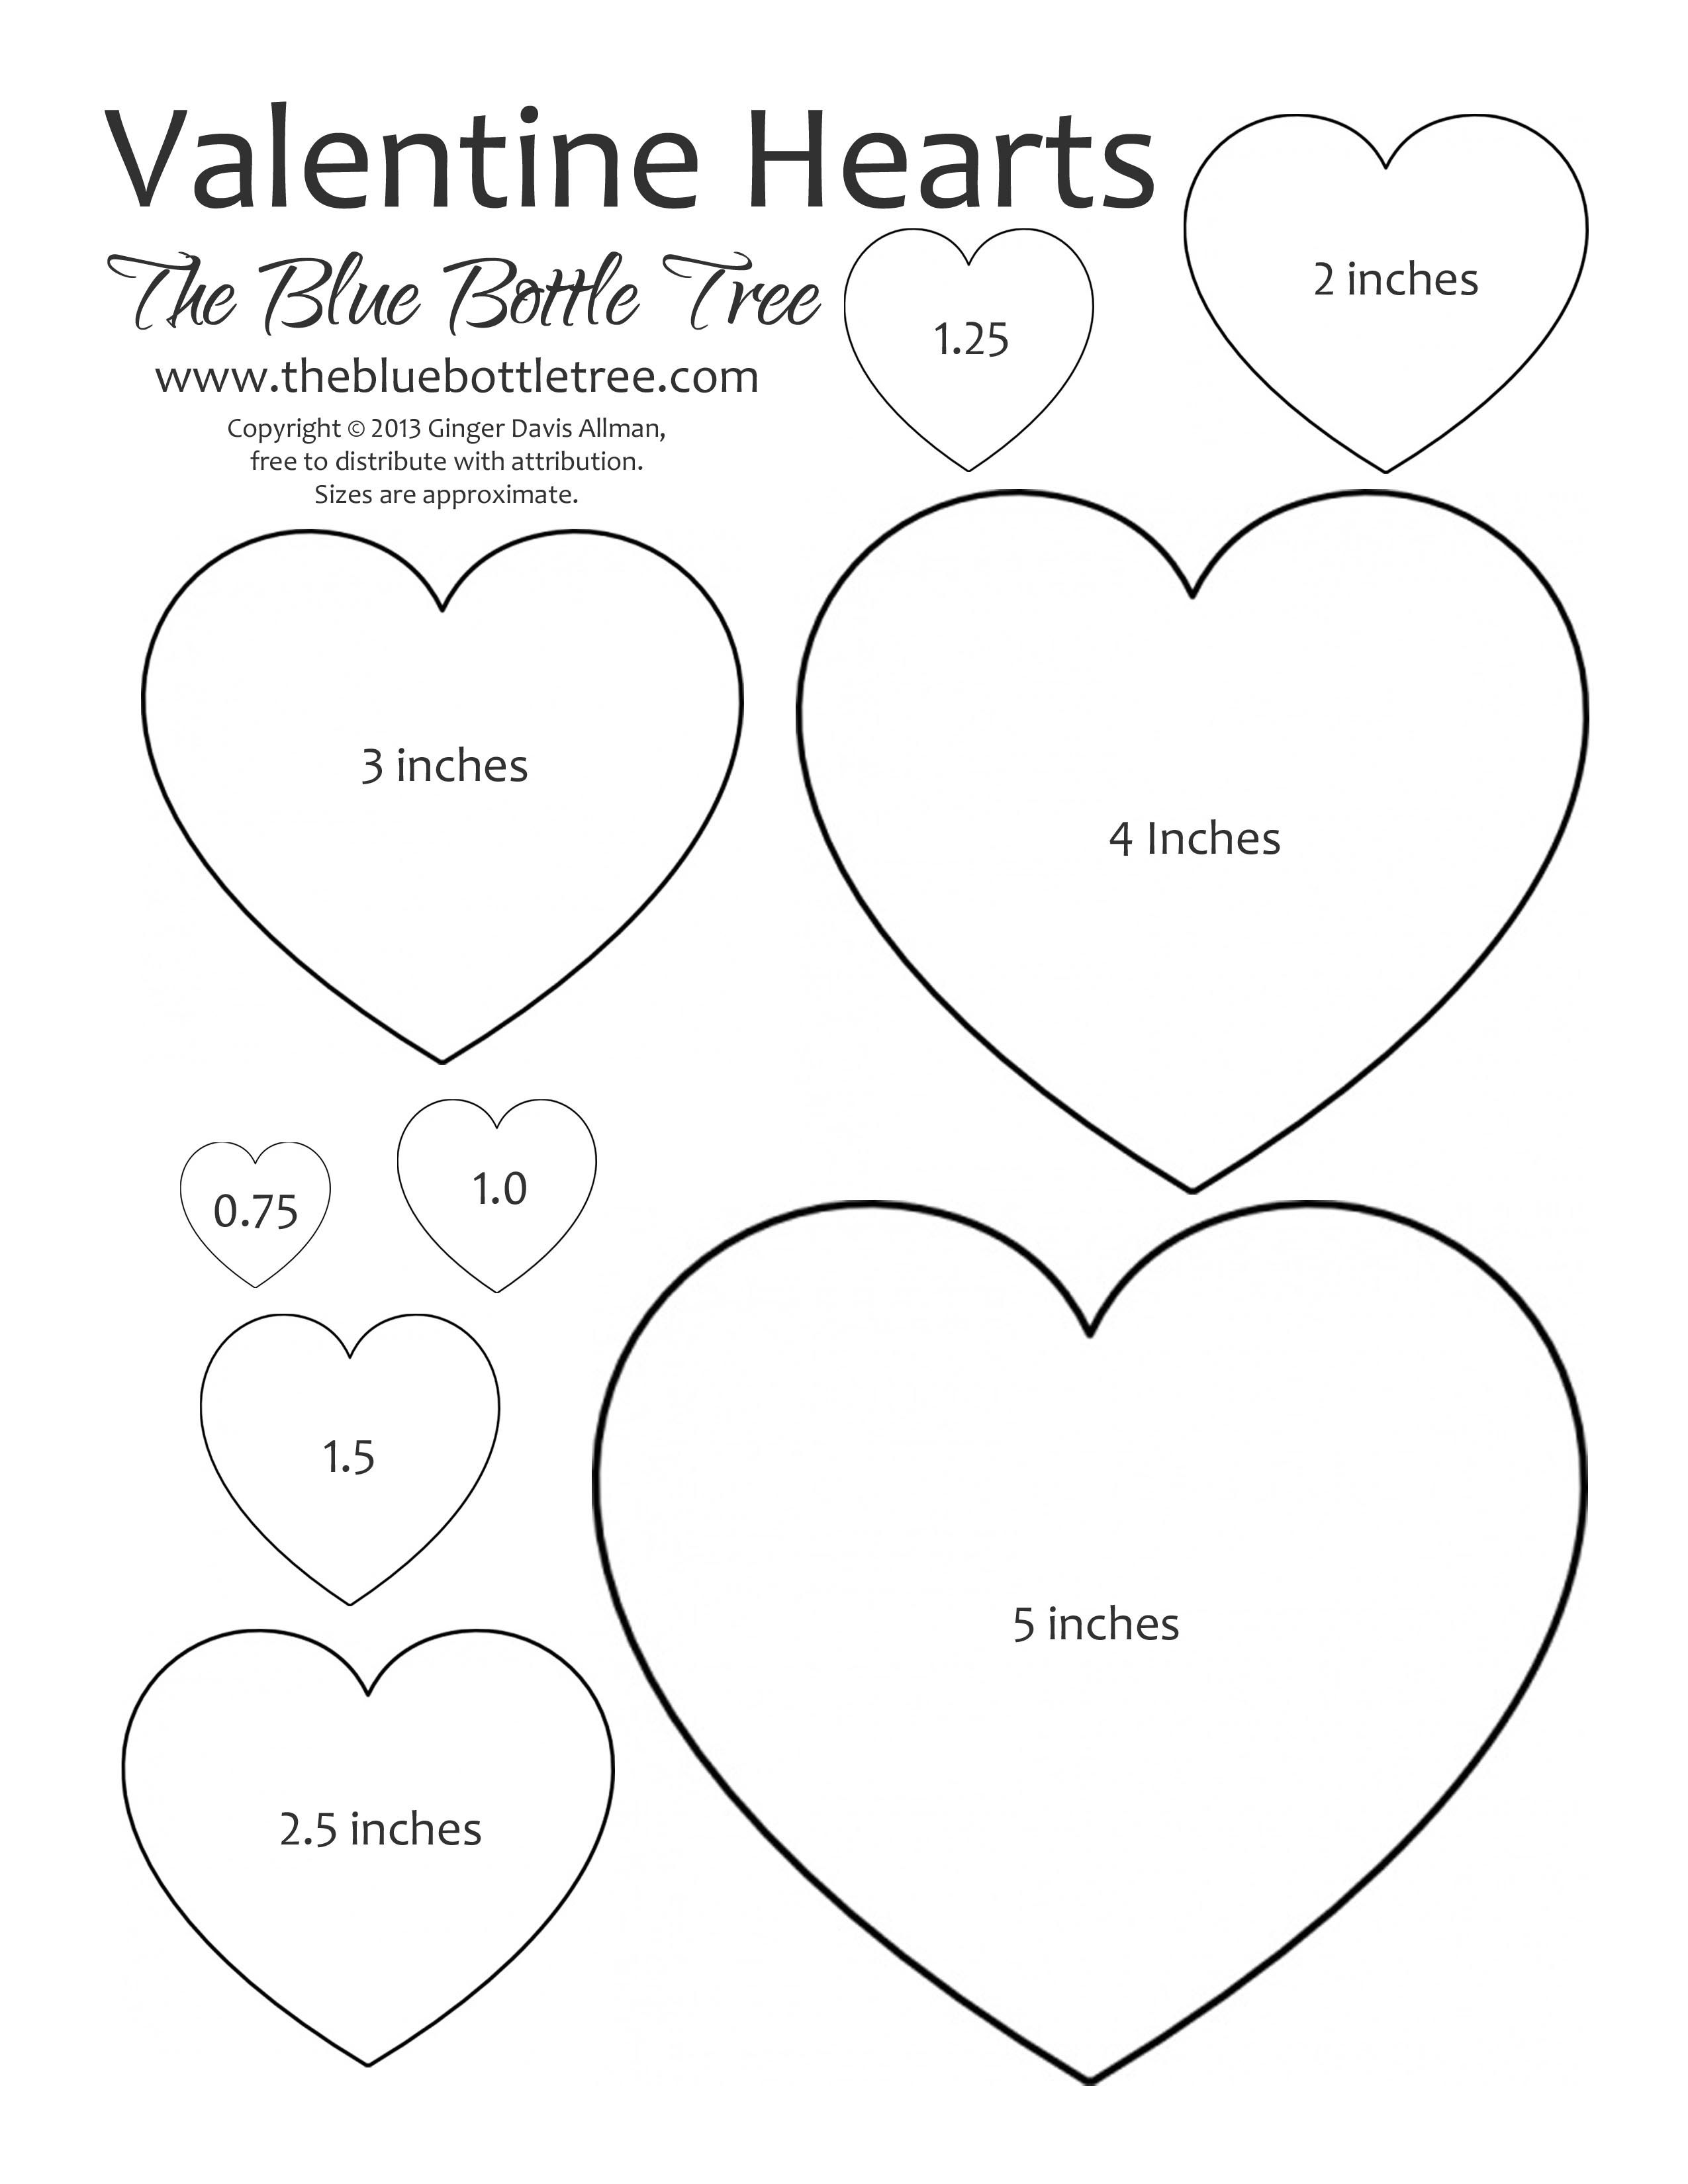 Valentine Hearts Clip Art In Sizes Ranging From 3 4 To 5